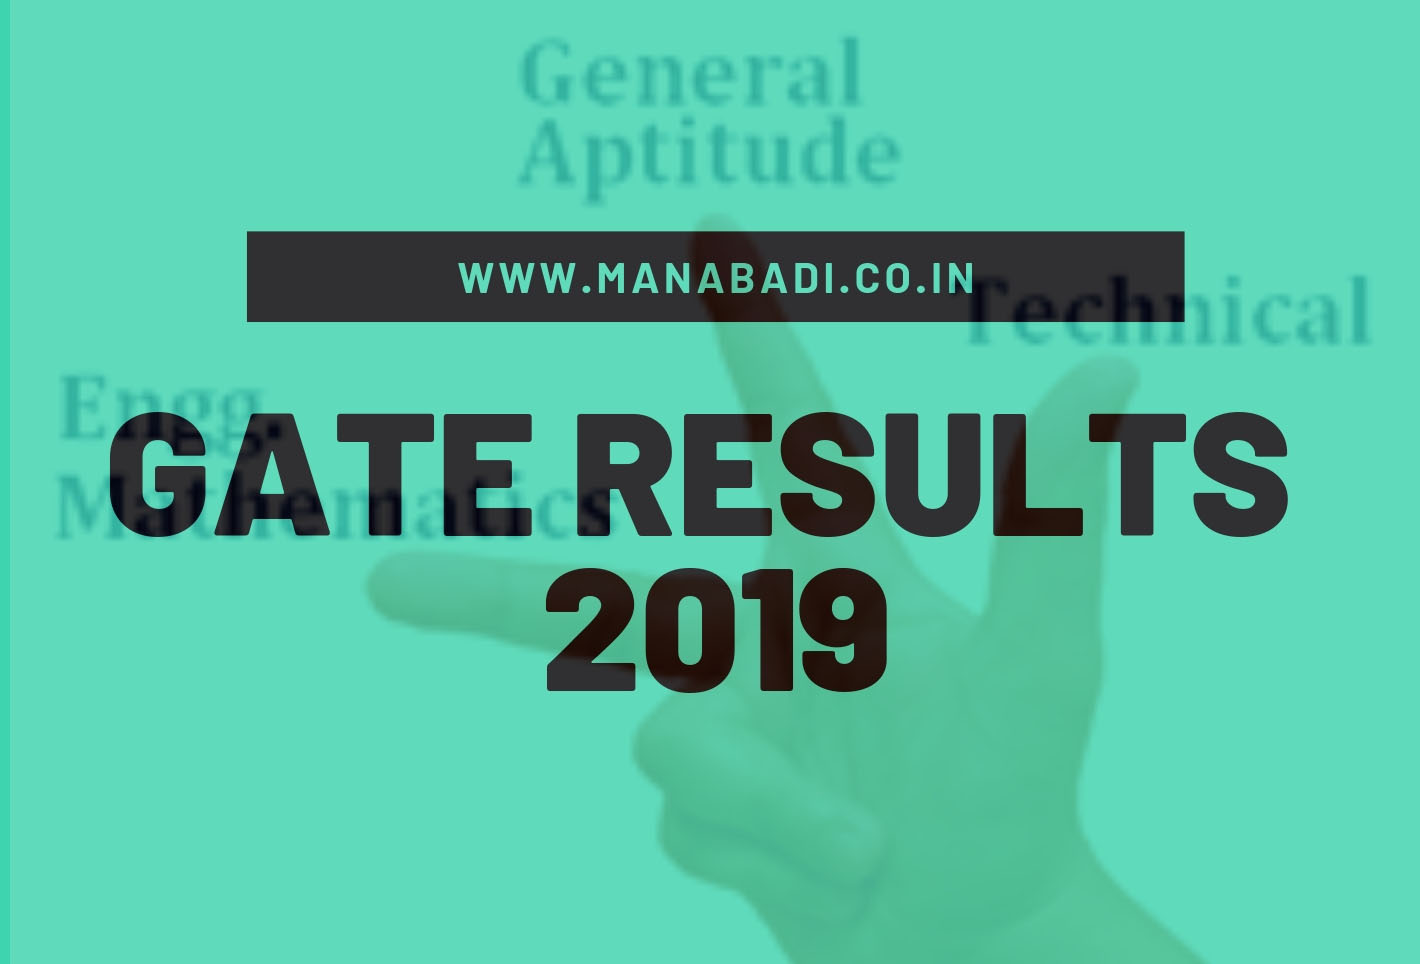 GATE 2019 Results